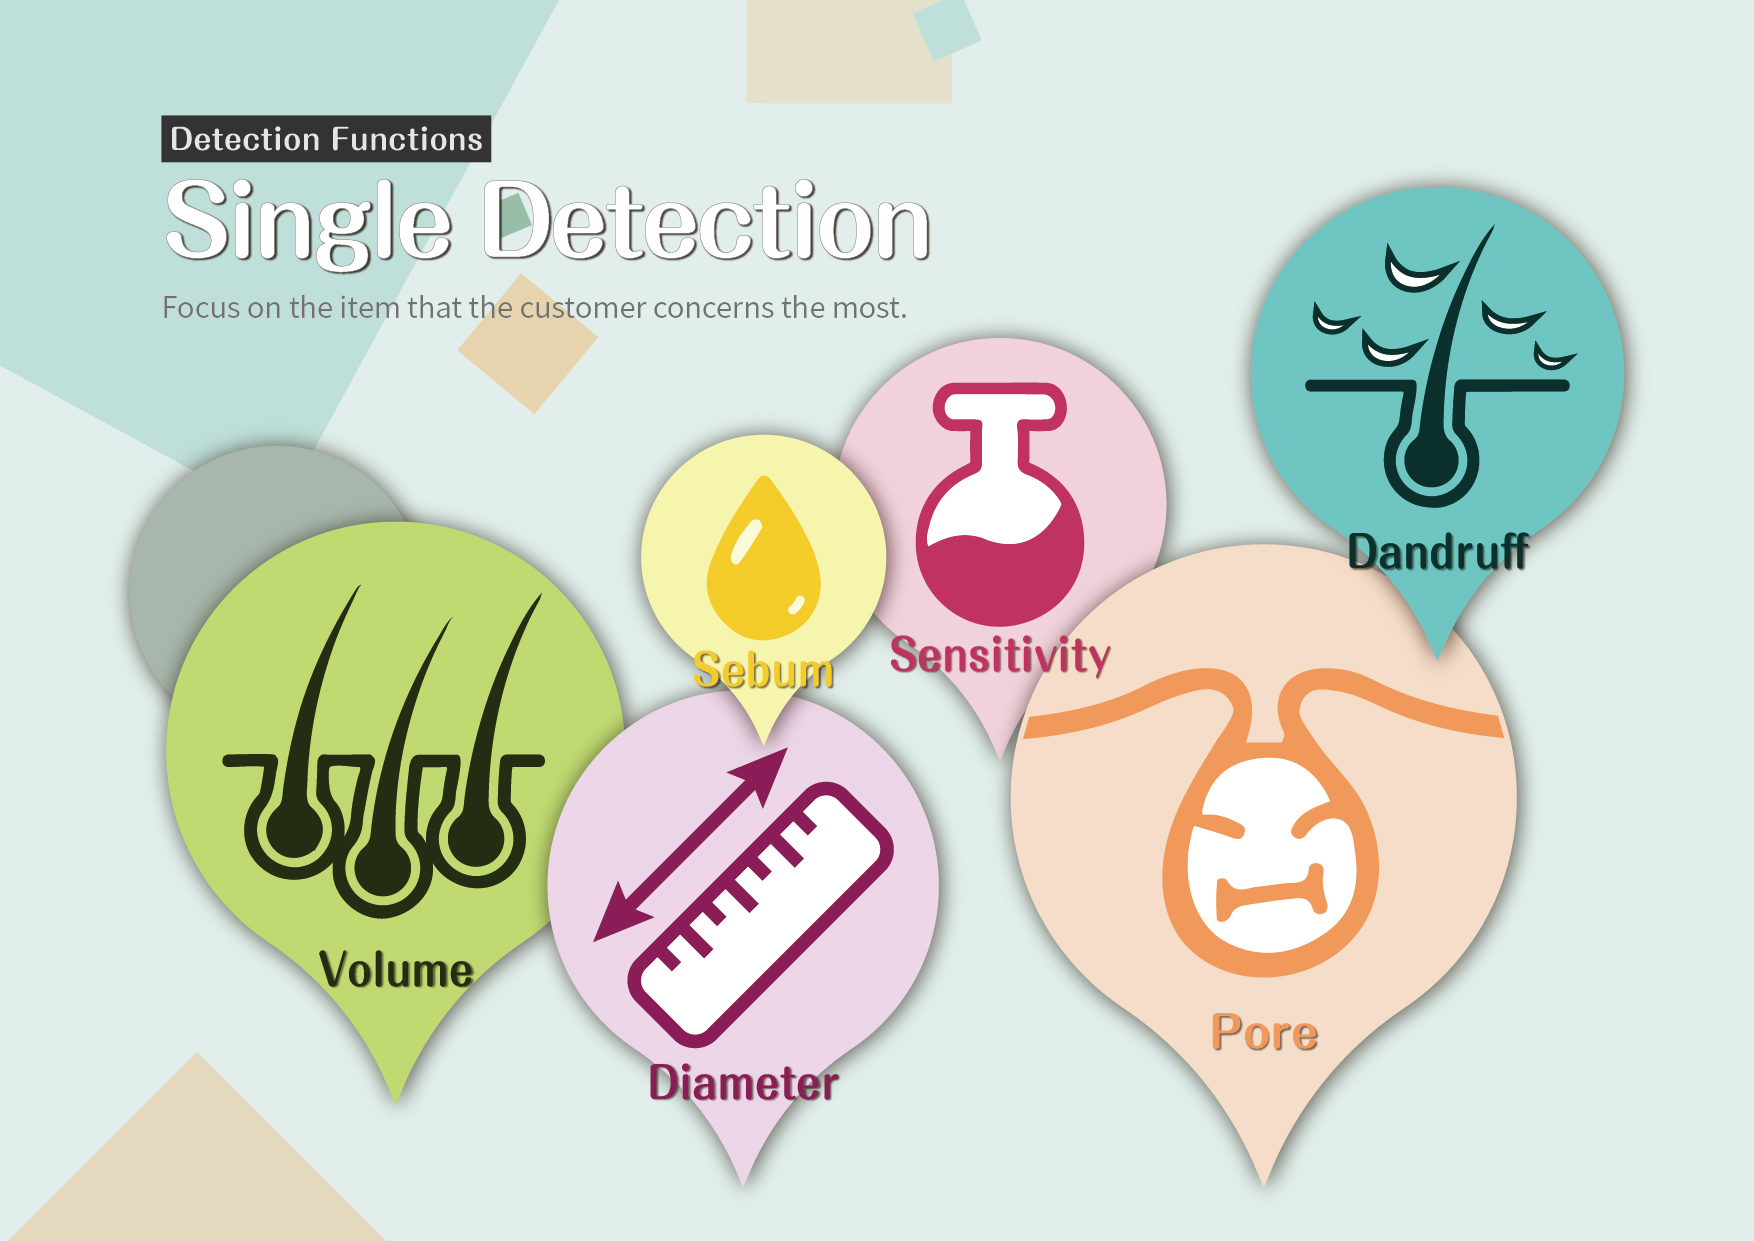 Single Detection: Focus on the item that the customer concerns the most.